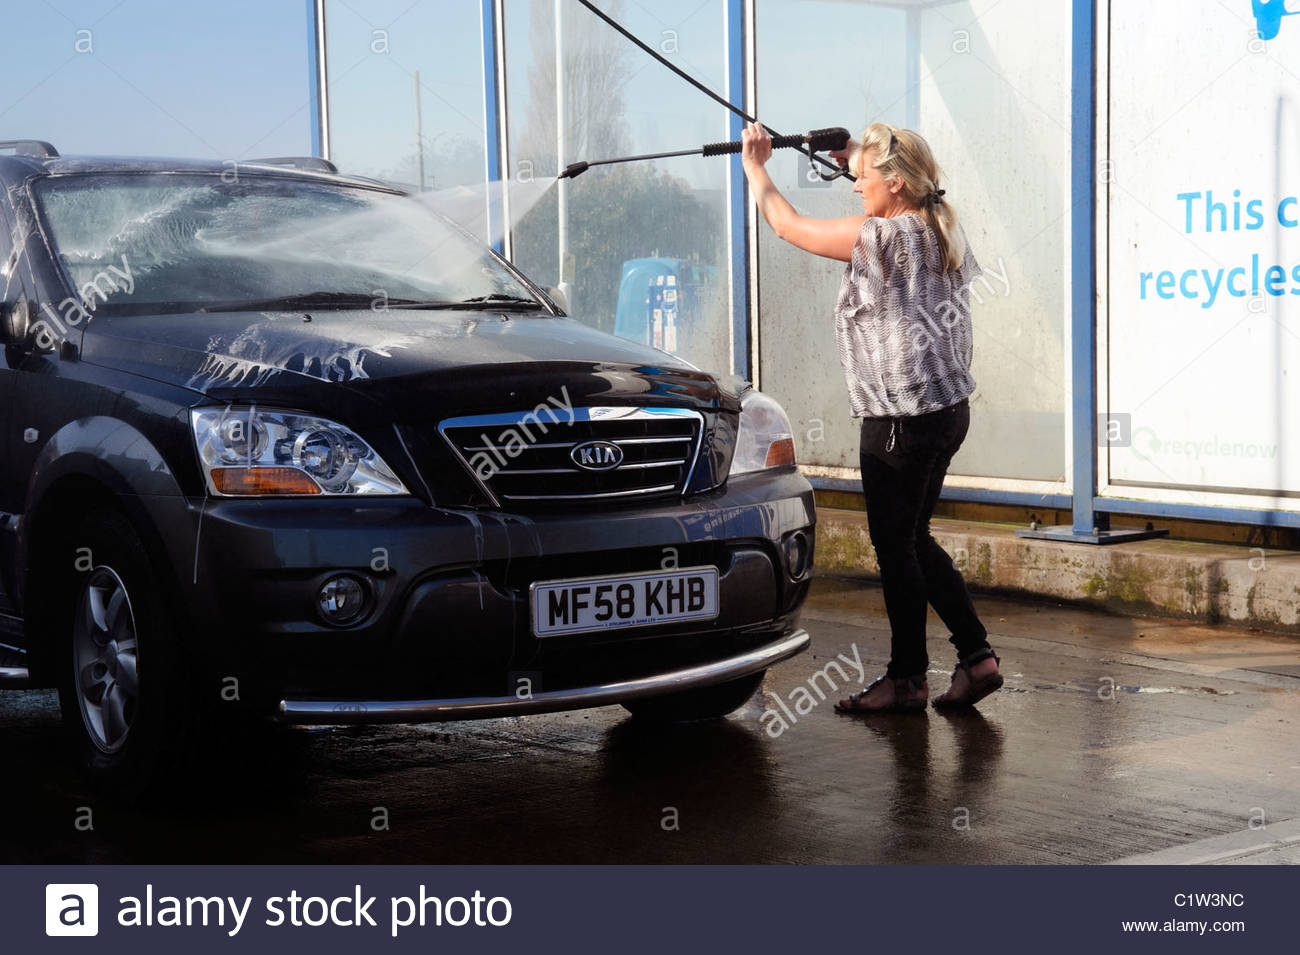 car wash uk stockfotos car wash uk bilder alamy. Black Bedroom Furniture Sets. Home Design Ideas